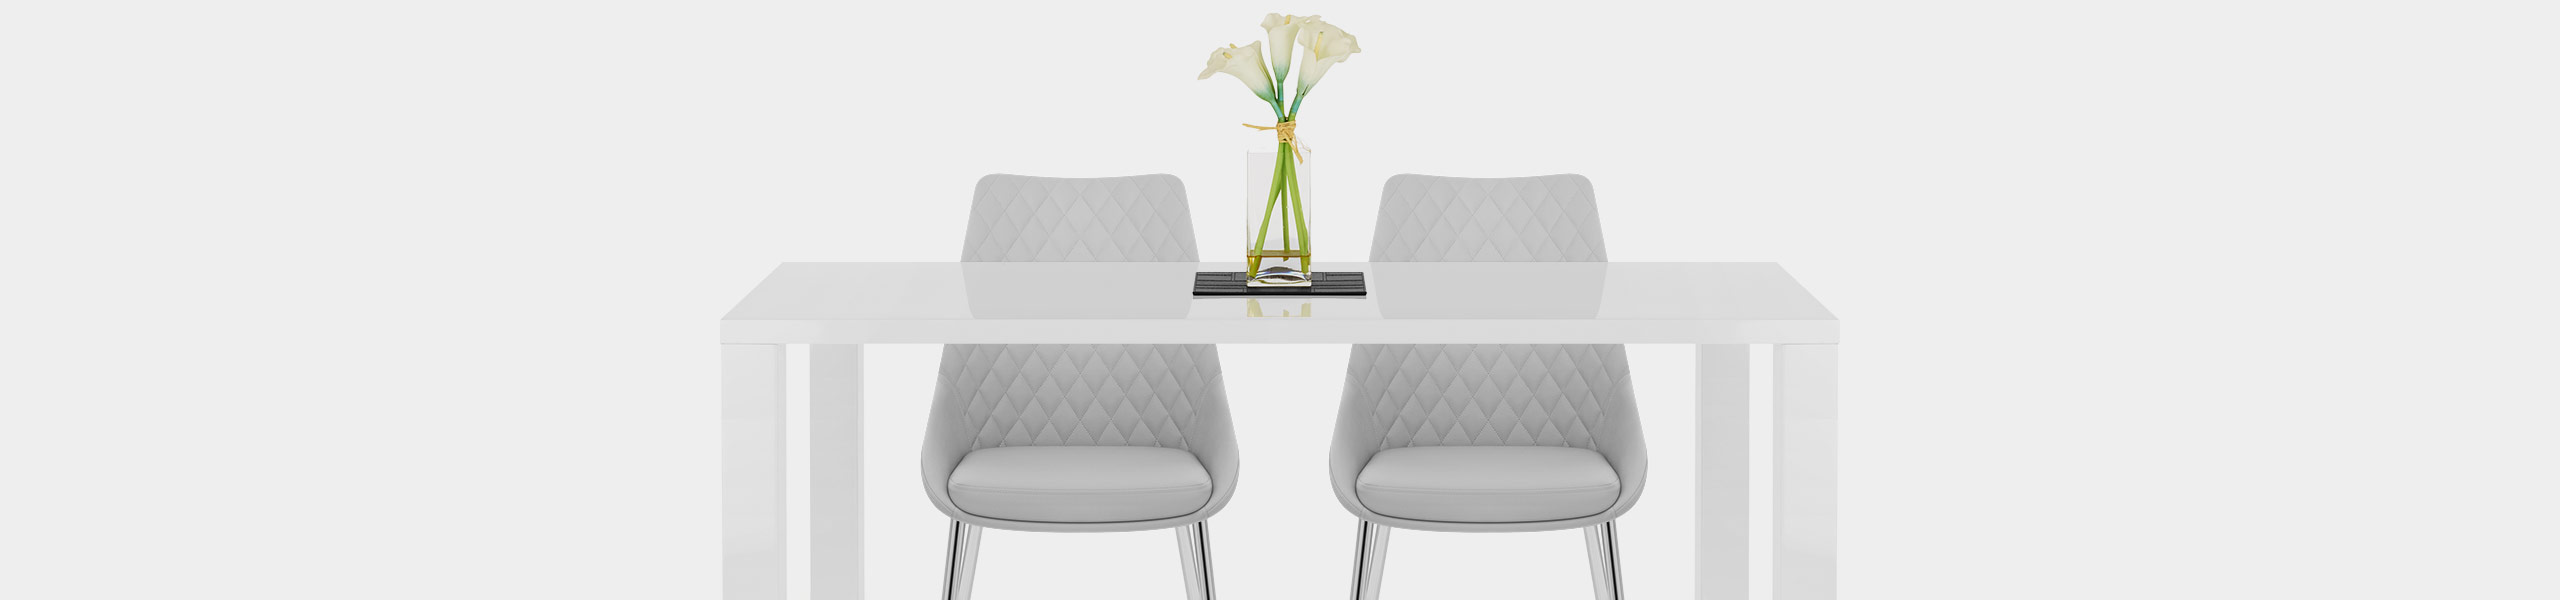 Liberty Dining Chair Light Grey Video Banner